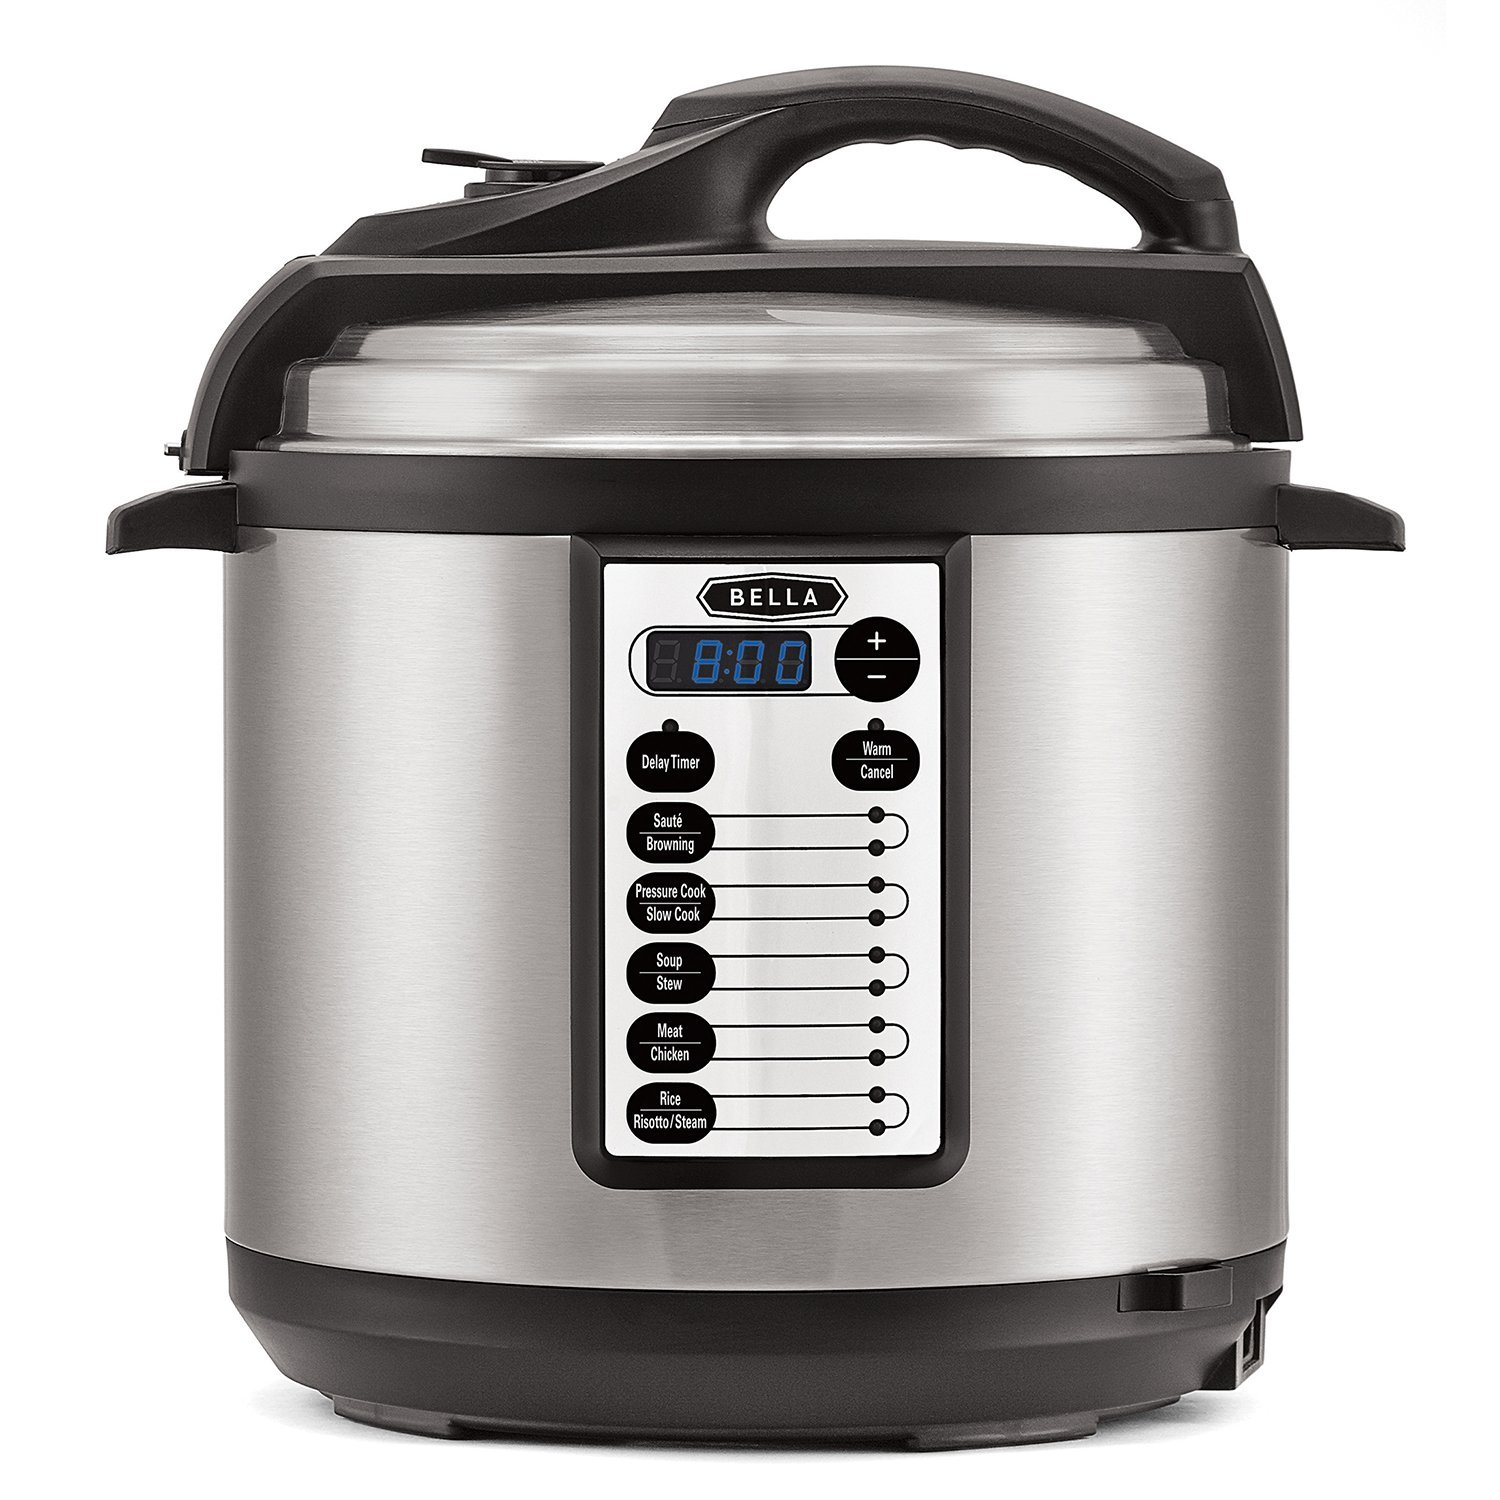 BELLA (14467) 10-In-1 Multi-Use Programmable 6 Quart Pressure Cooker, Slow Cooker, Rice Cooker, Steamer, Sauté Warmer with Searing & Browning Feature, 1000 Watts